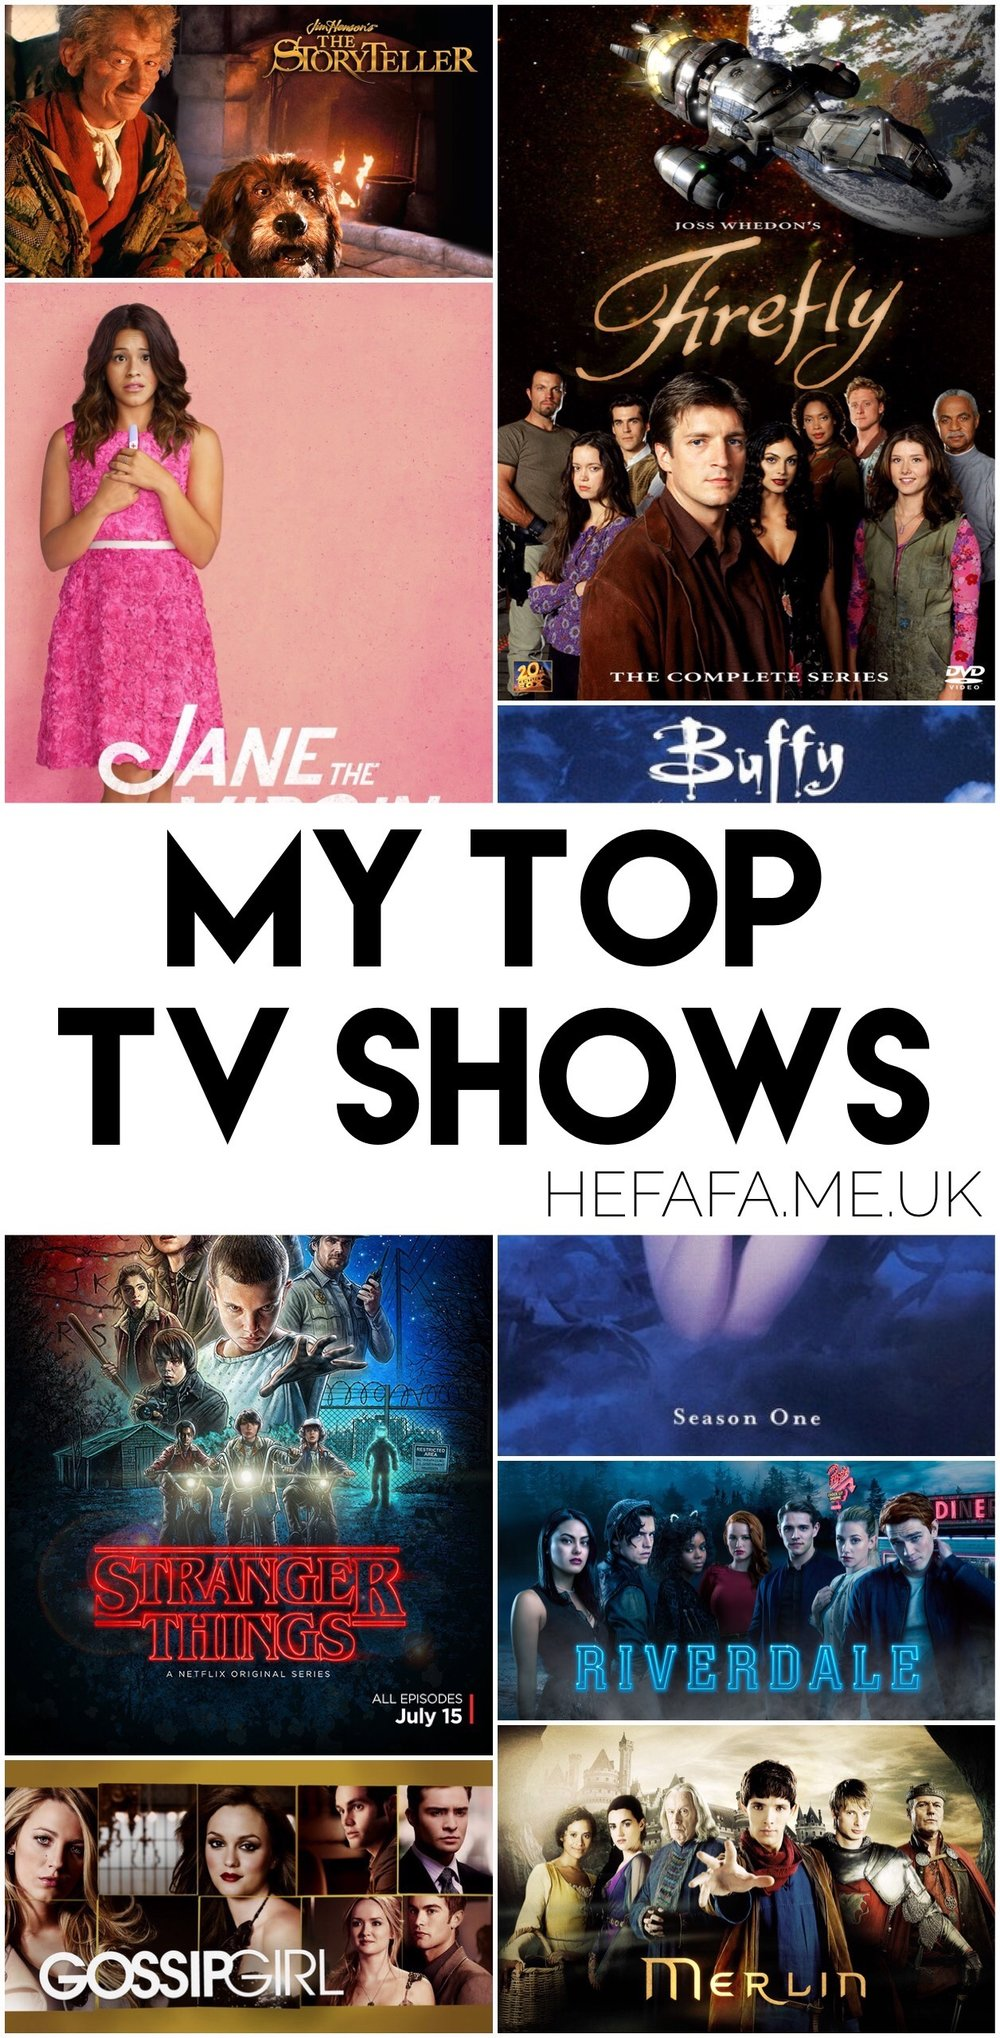 My Top TV Shows, hefafa.me.uk